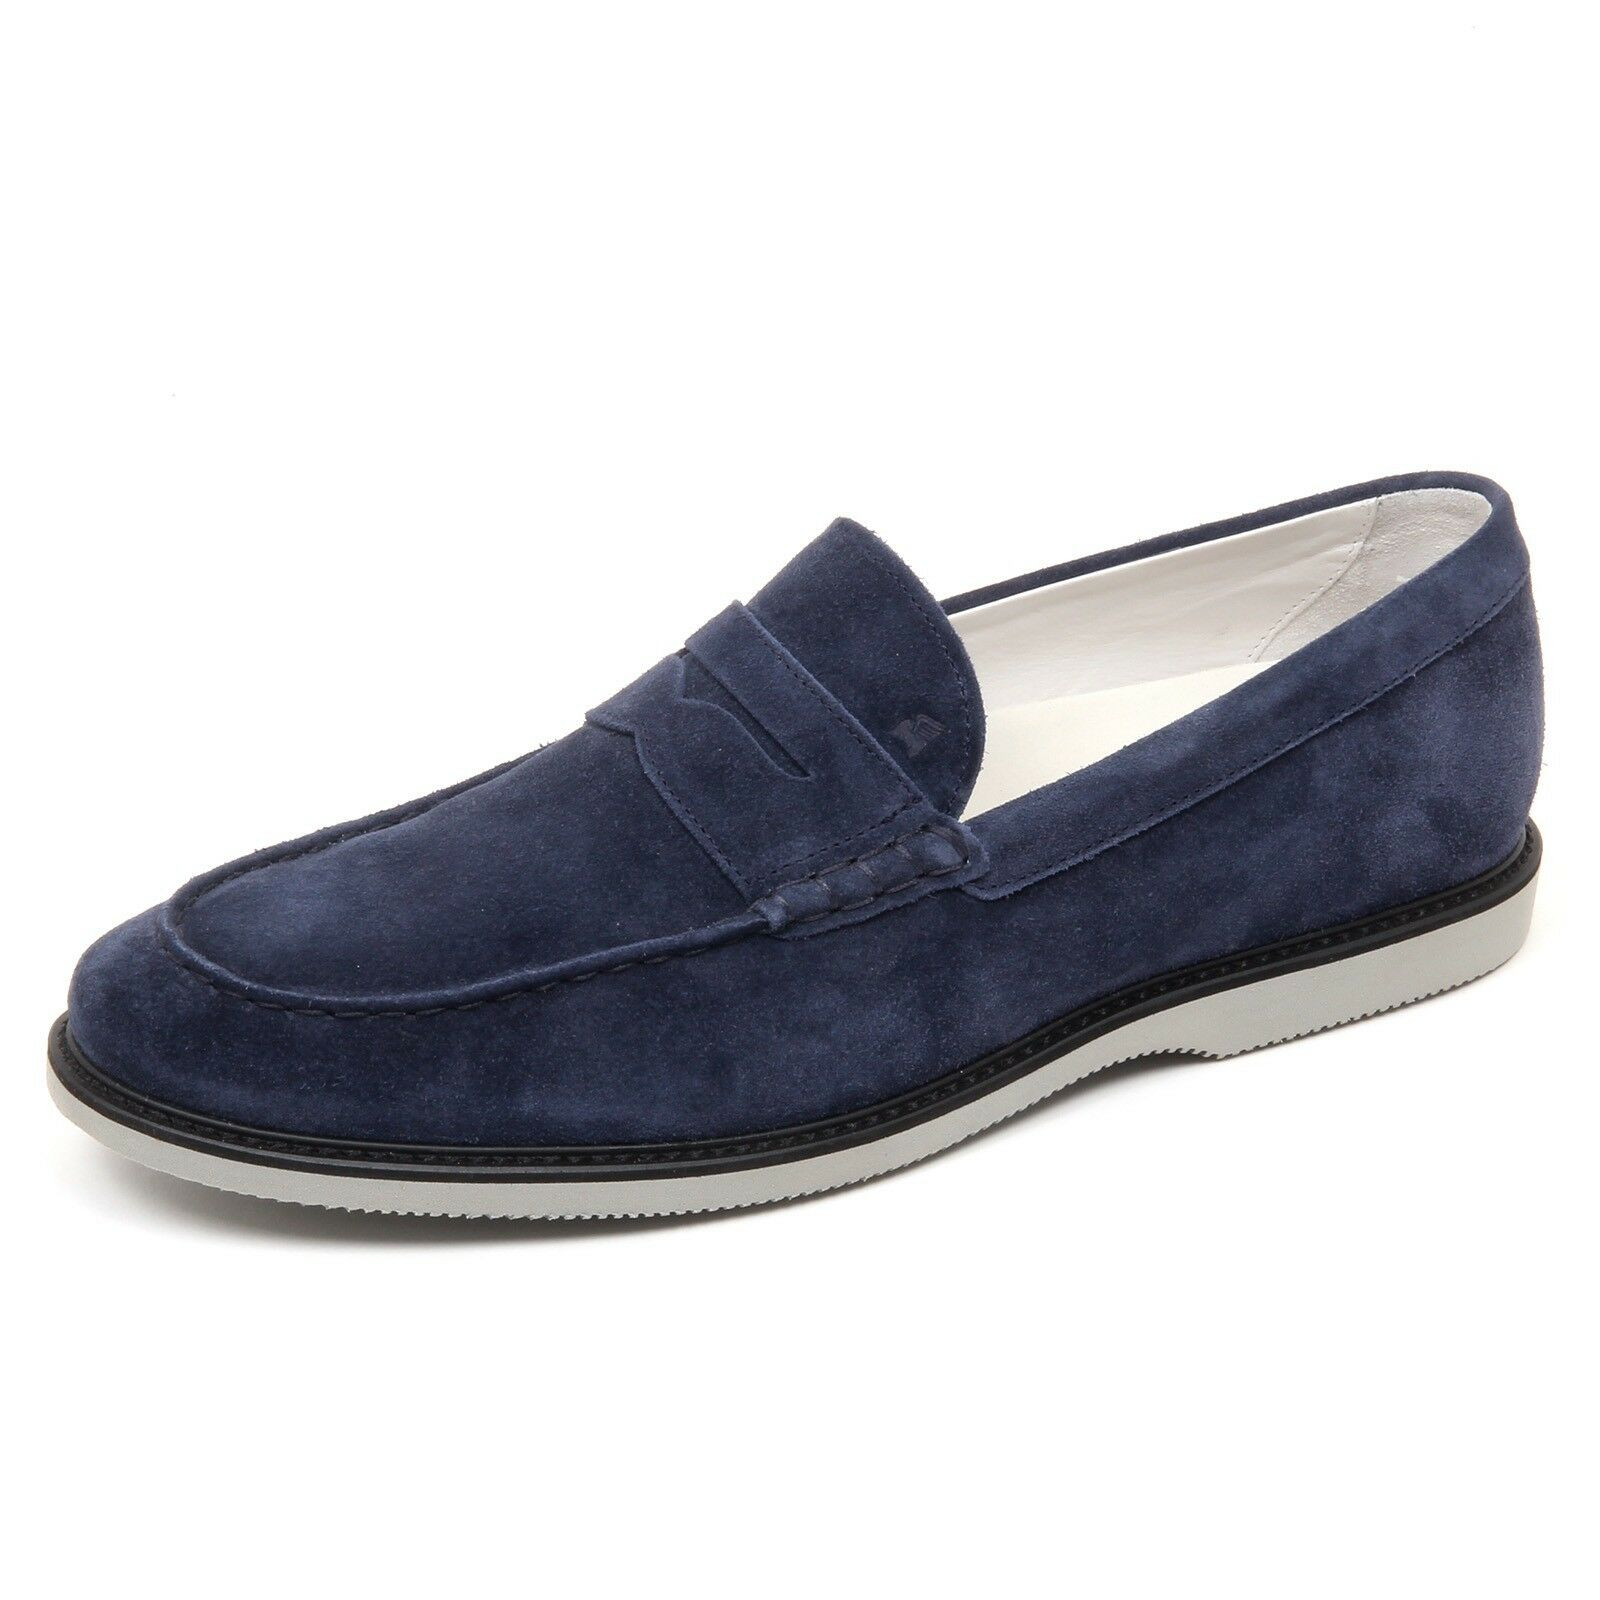 D2456 mocassino uomo HOGAN CLUB GUARDALO L blu loafer shoe man